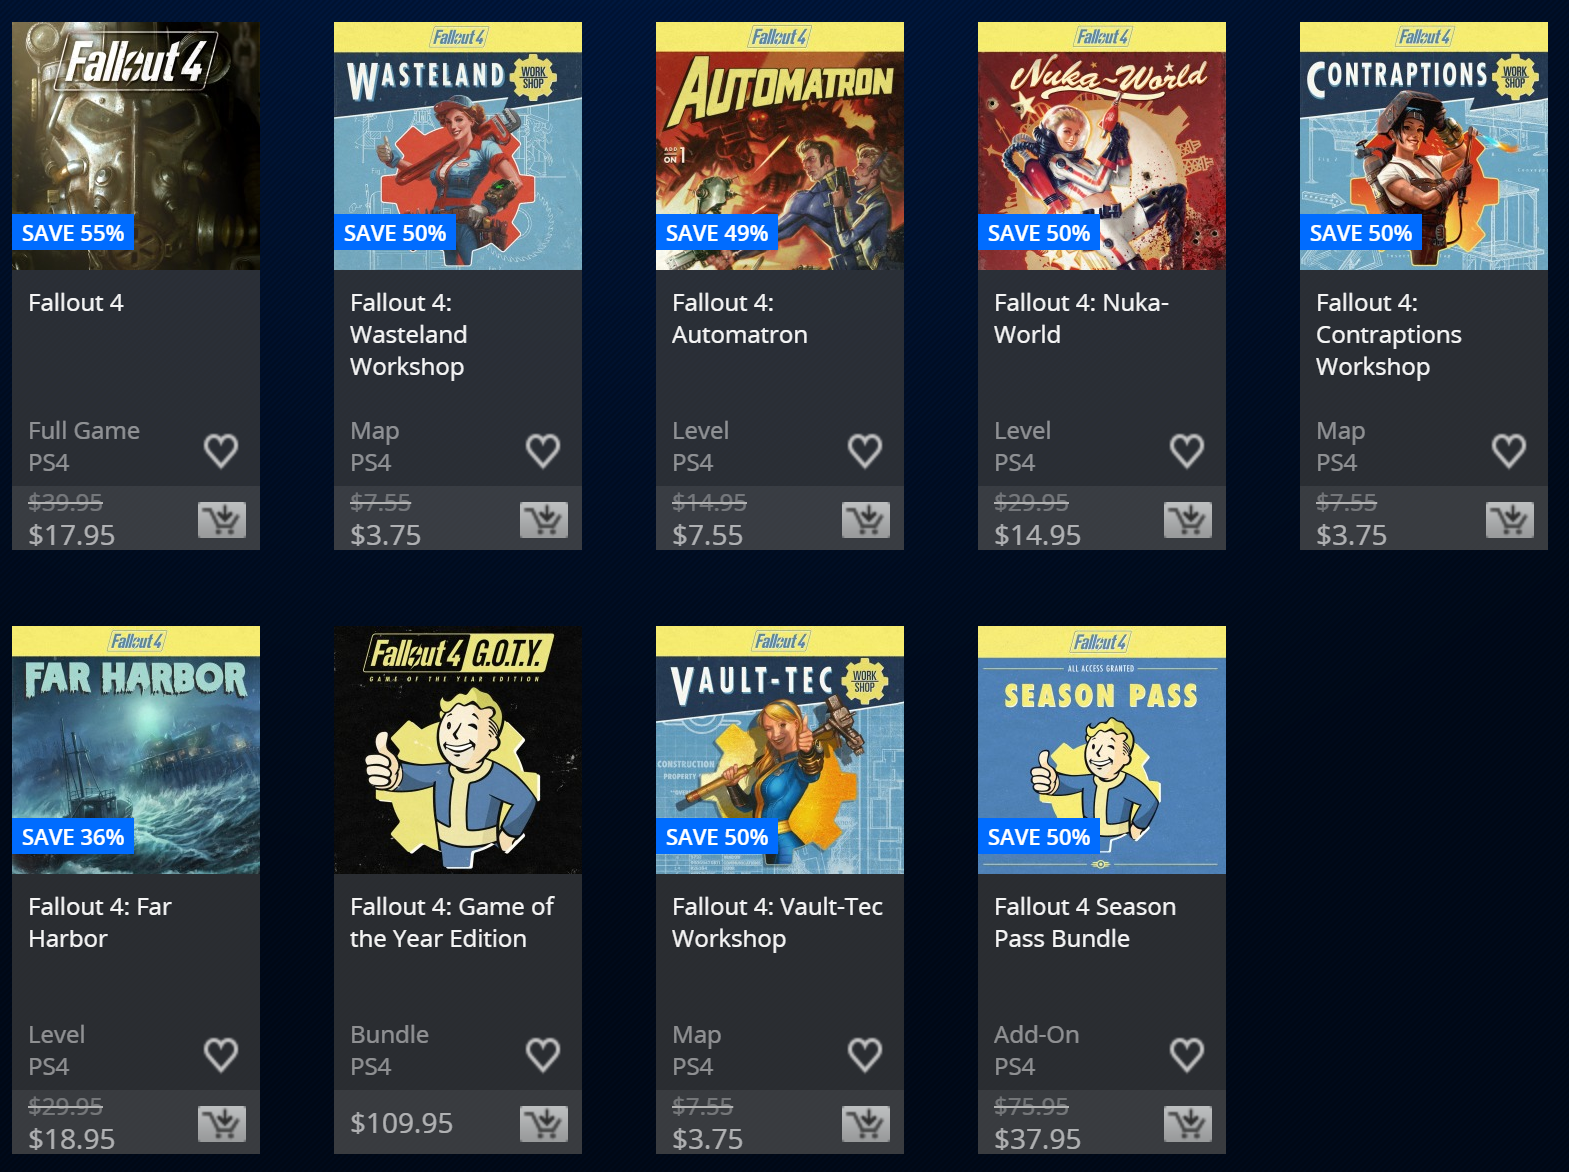 PlayStation Store Halloween Sale Fallout 4